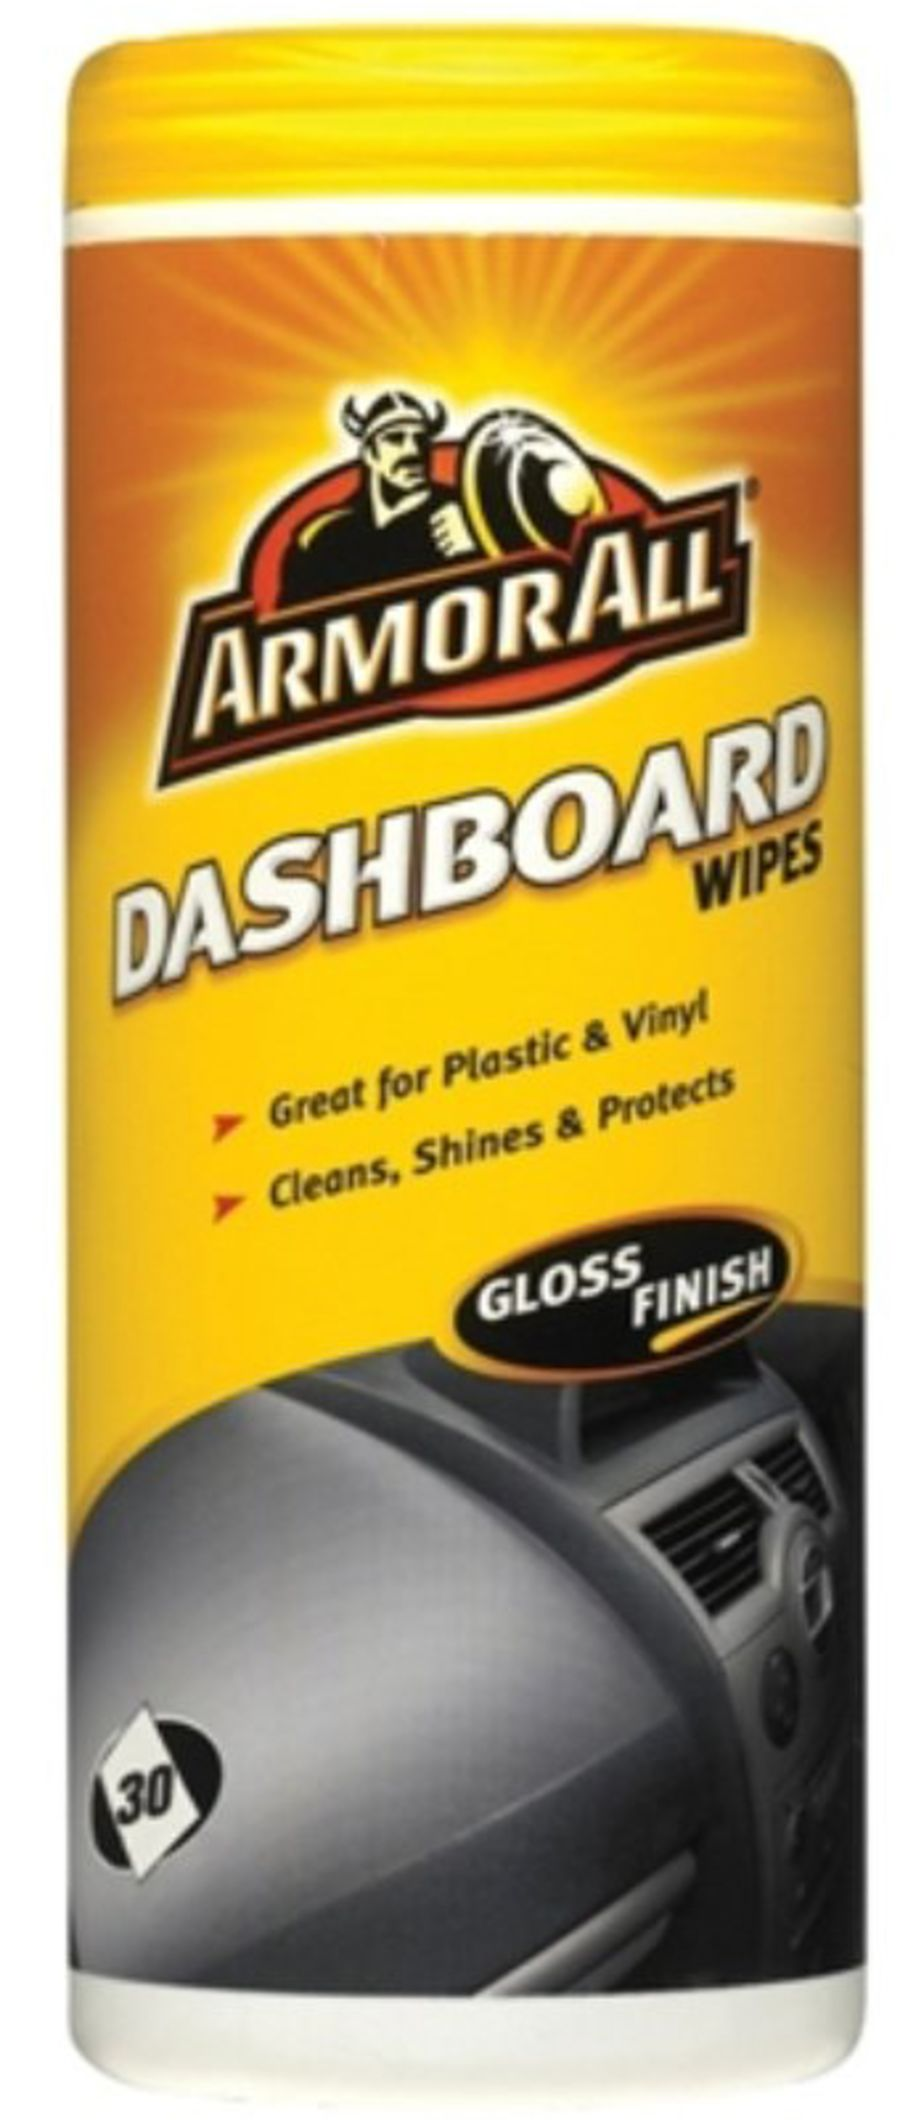 Dashboard Wipes - Gloss Finish - Tub Of 30